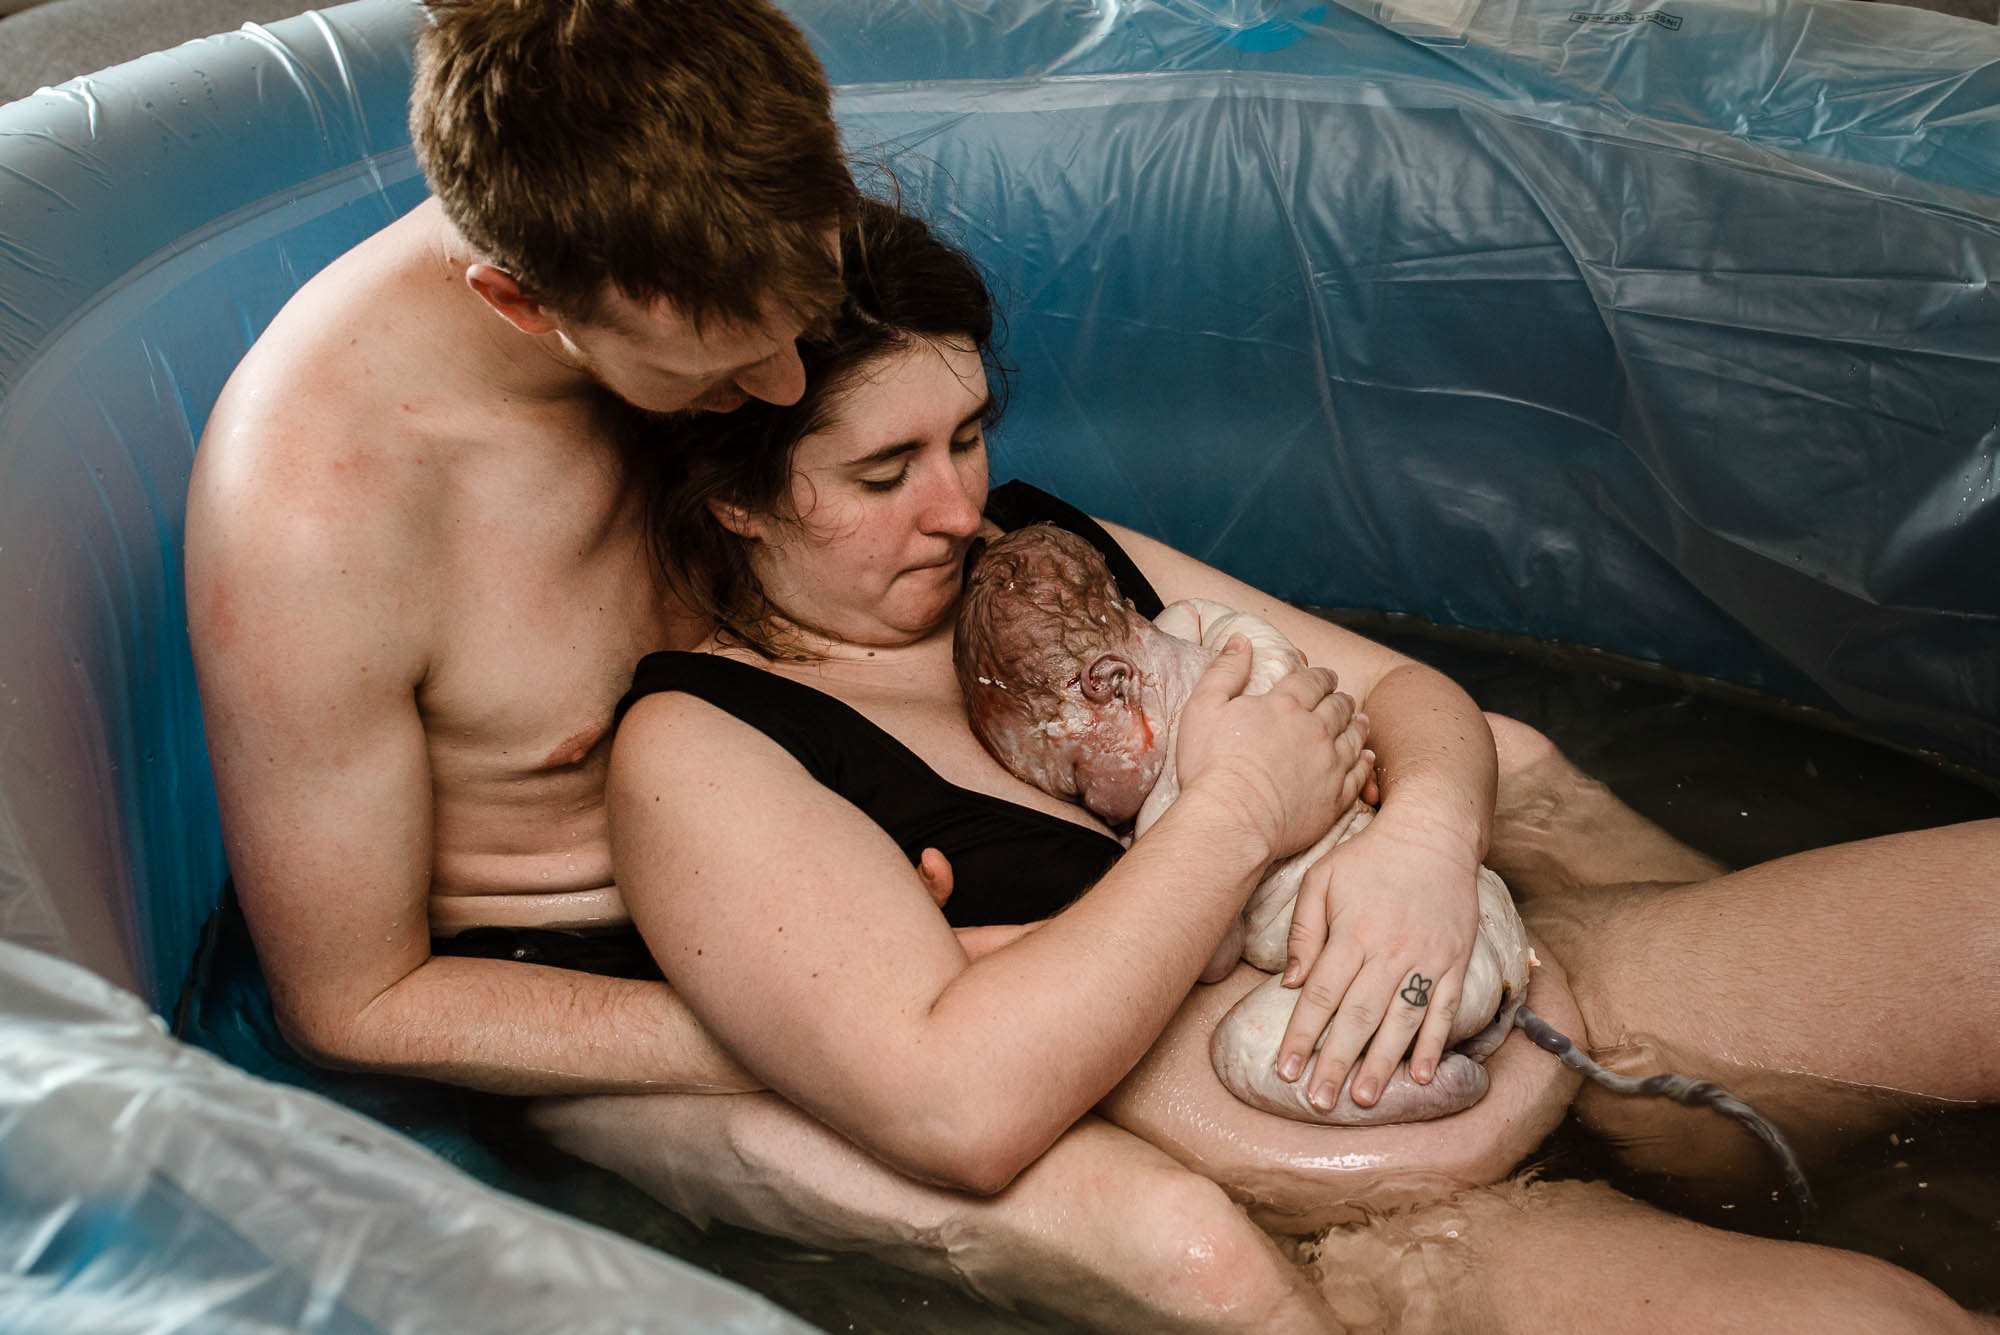 Meredith Westin Photography- Birth and Postpartum Photographer Minnesota20190426120014.jpg